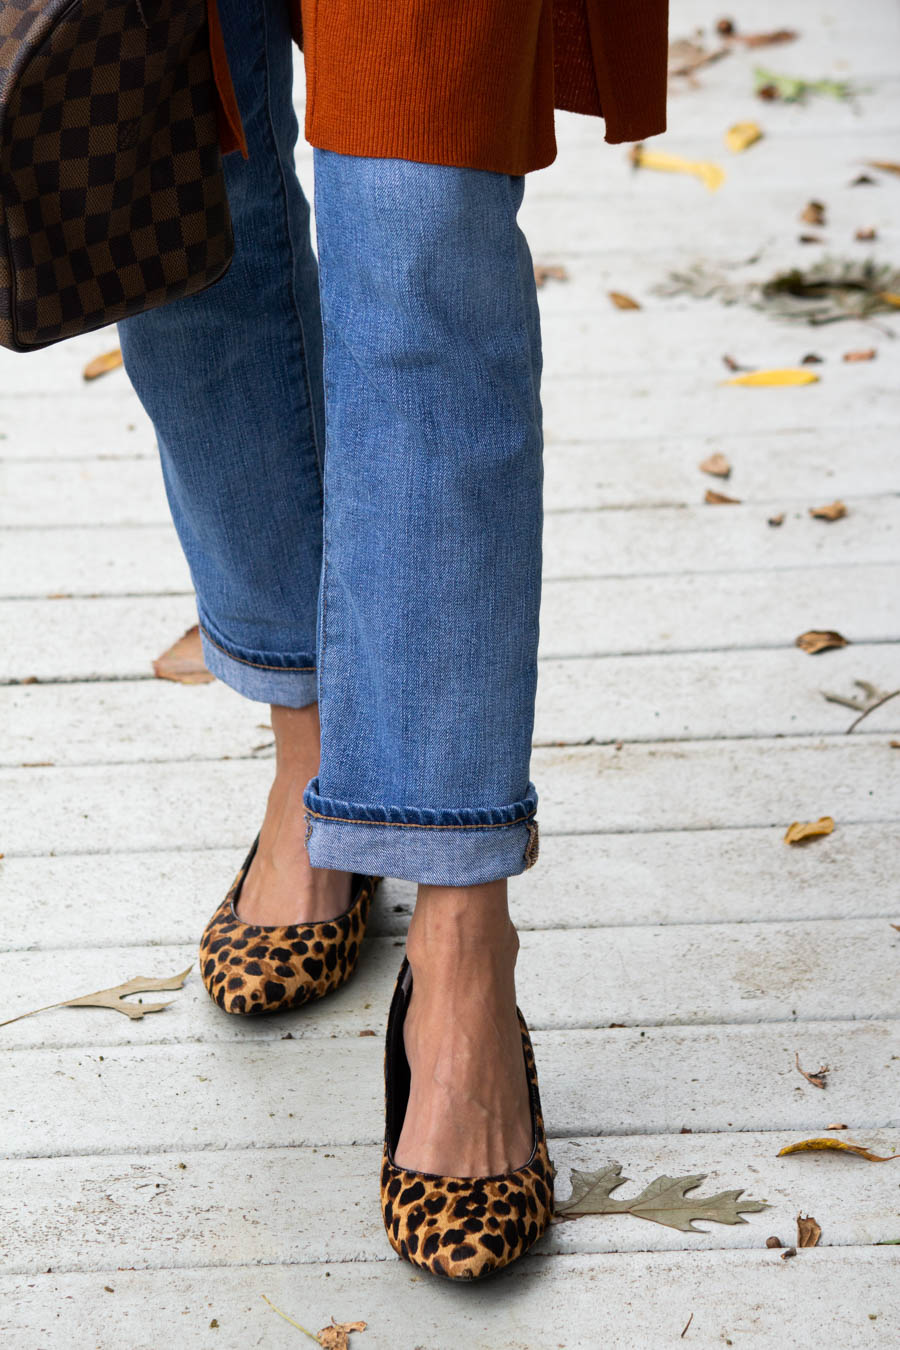 Leopard heels with jeans and pumpkin cardigan